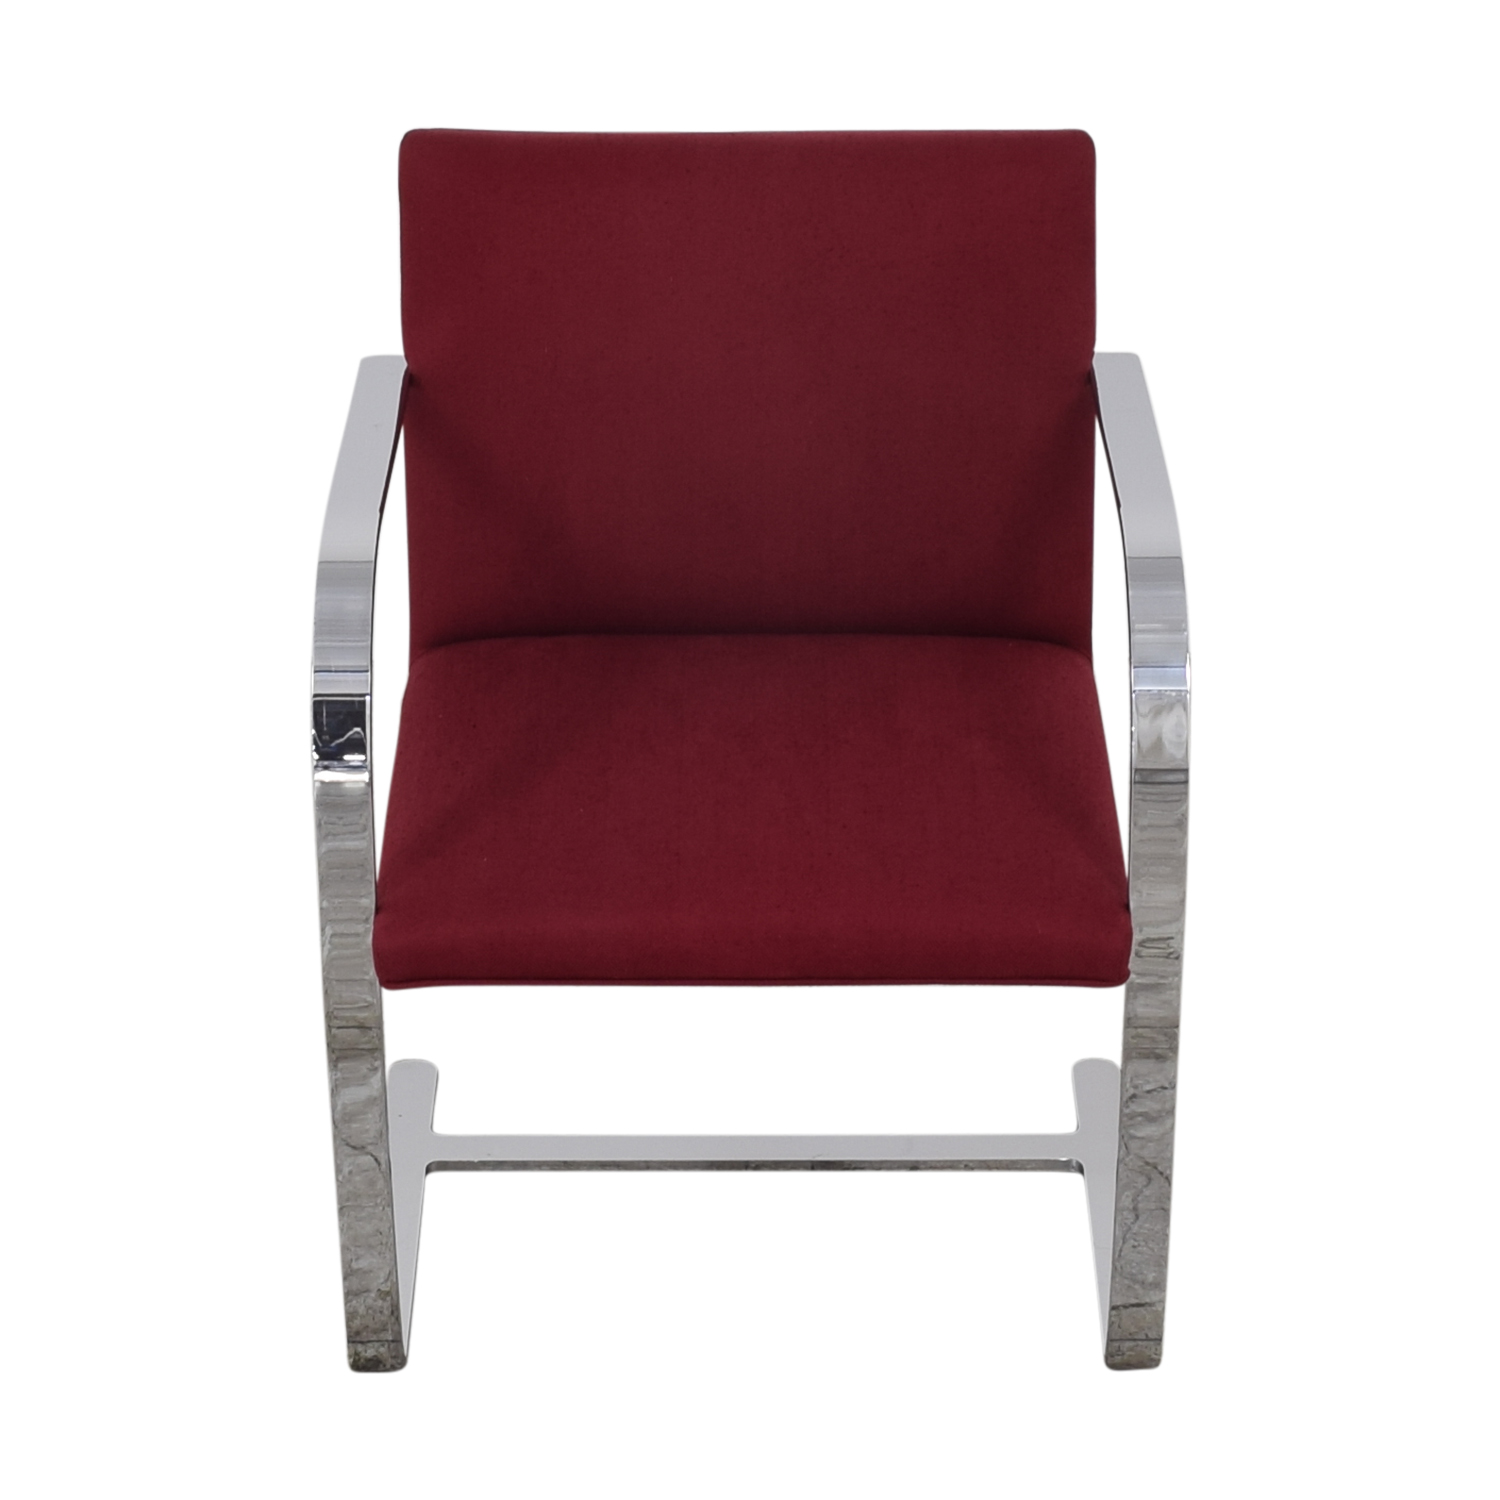 Knoll Knoll BRNO Chair with Flat Bar Frame coupon